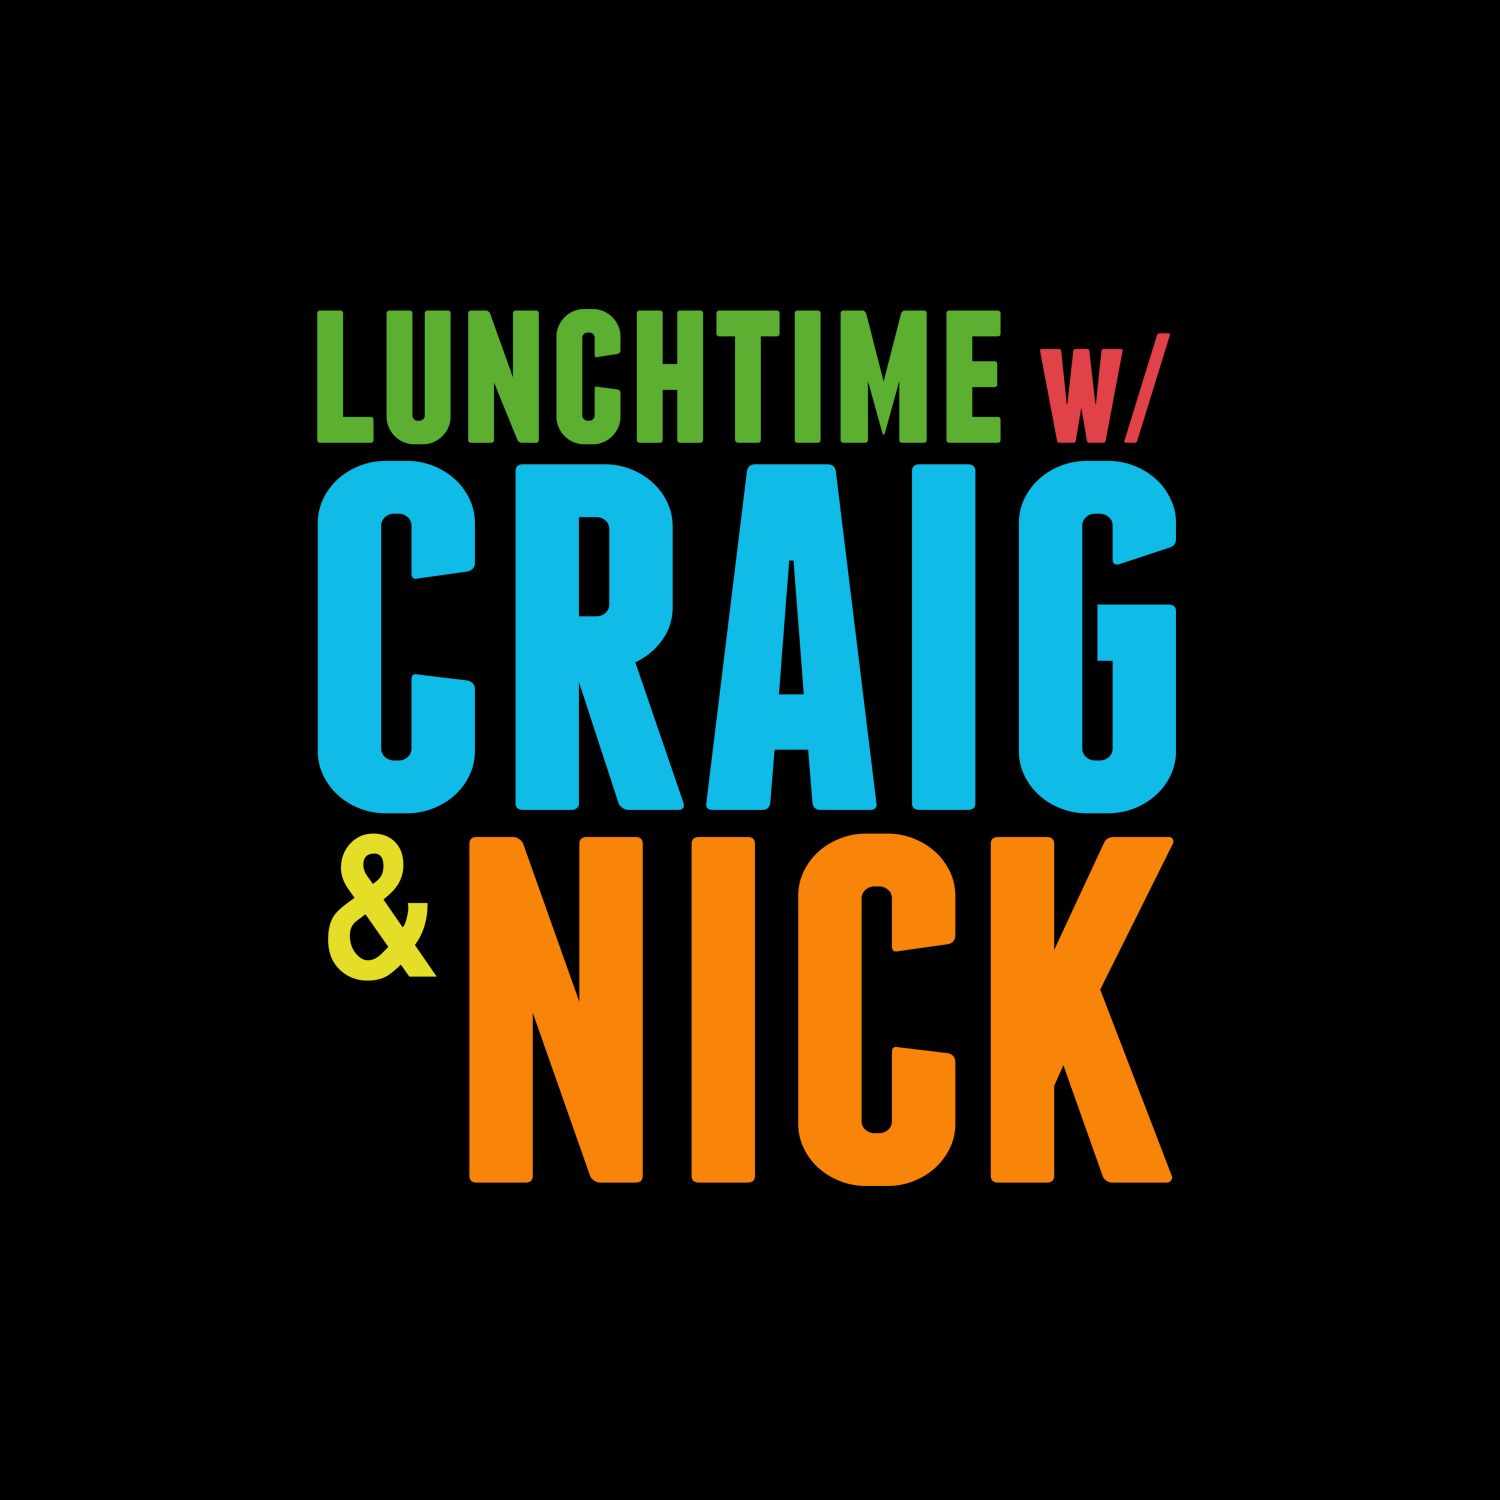 Lunchtime with Craig and Nick